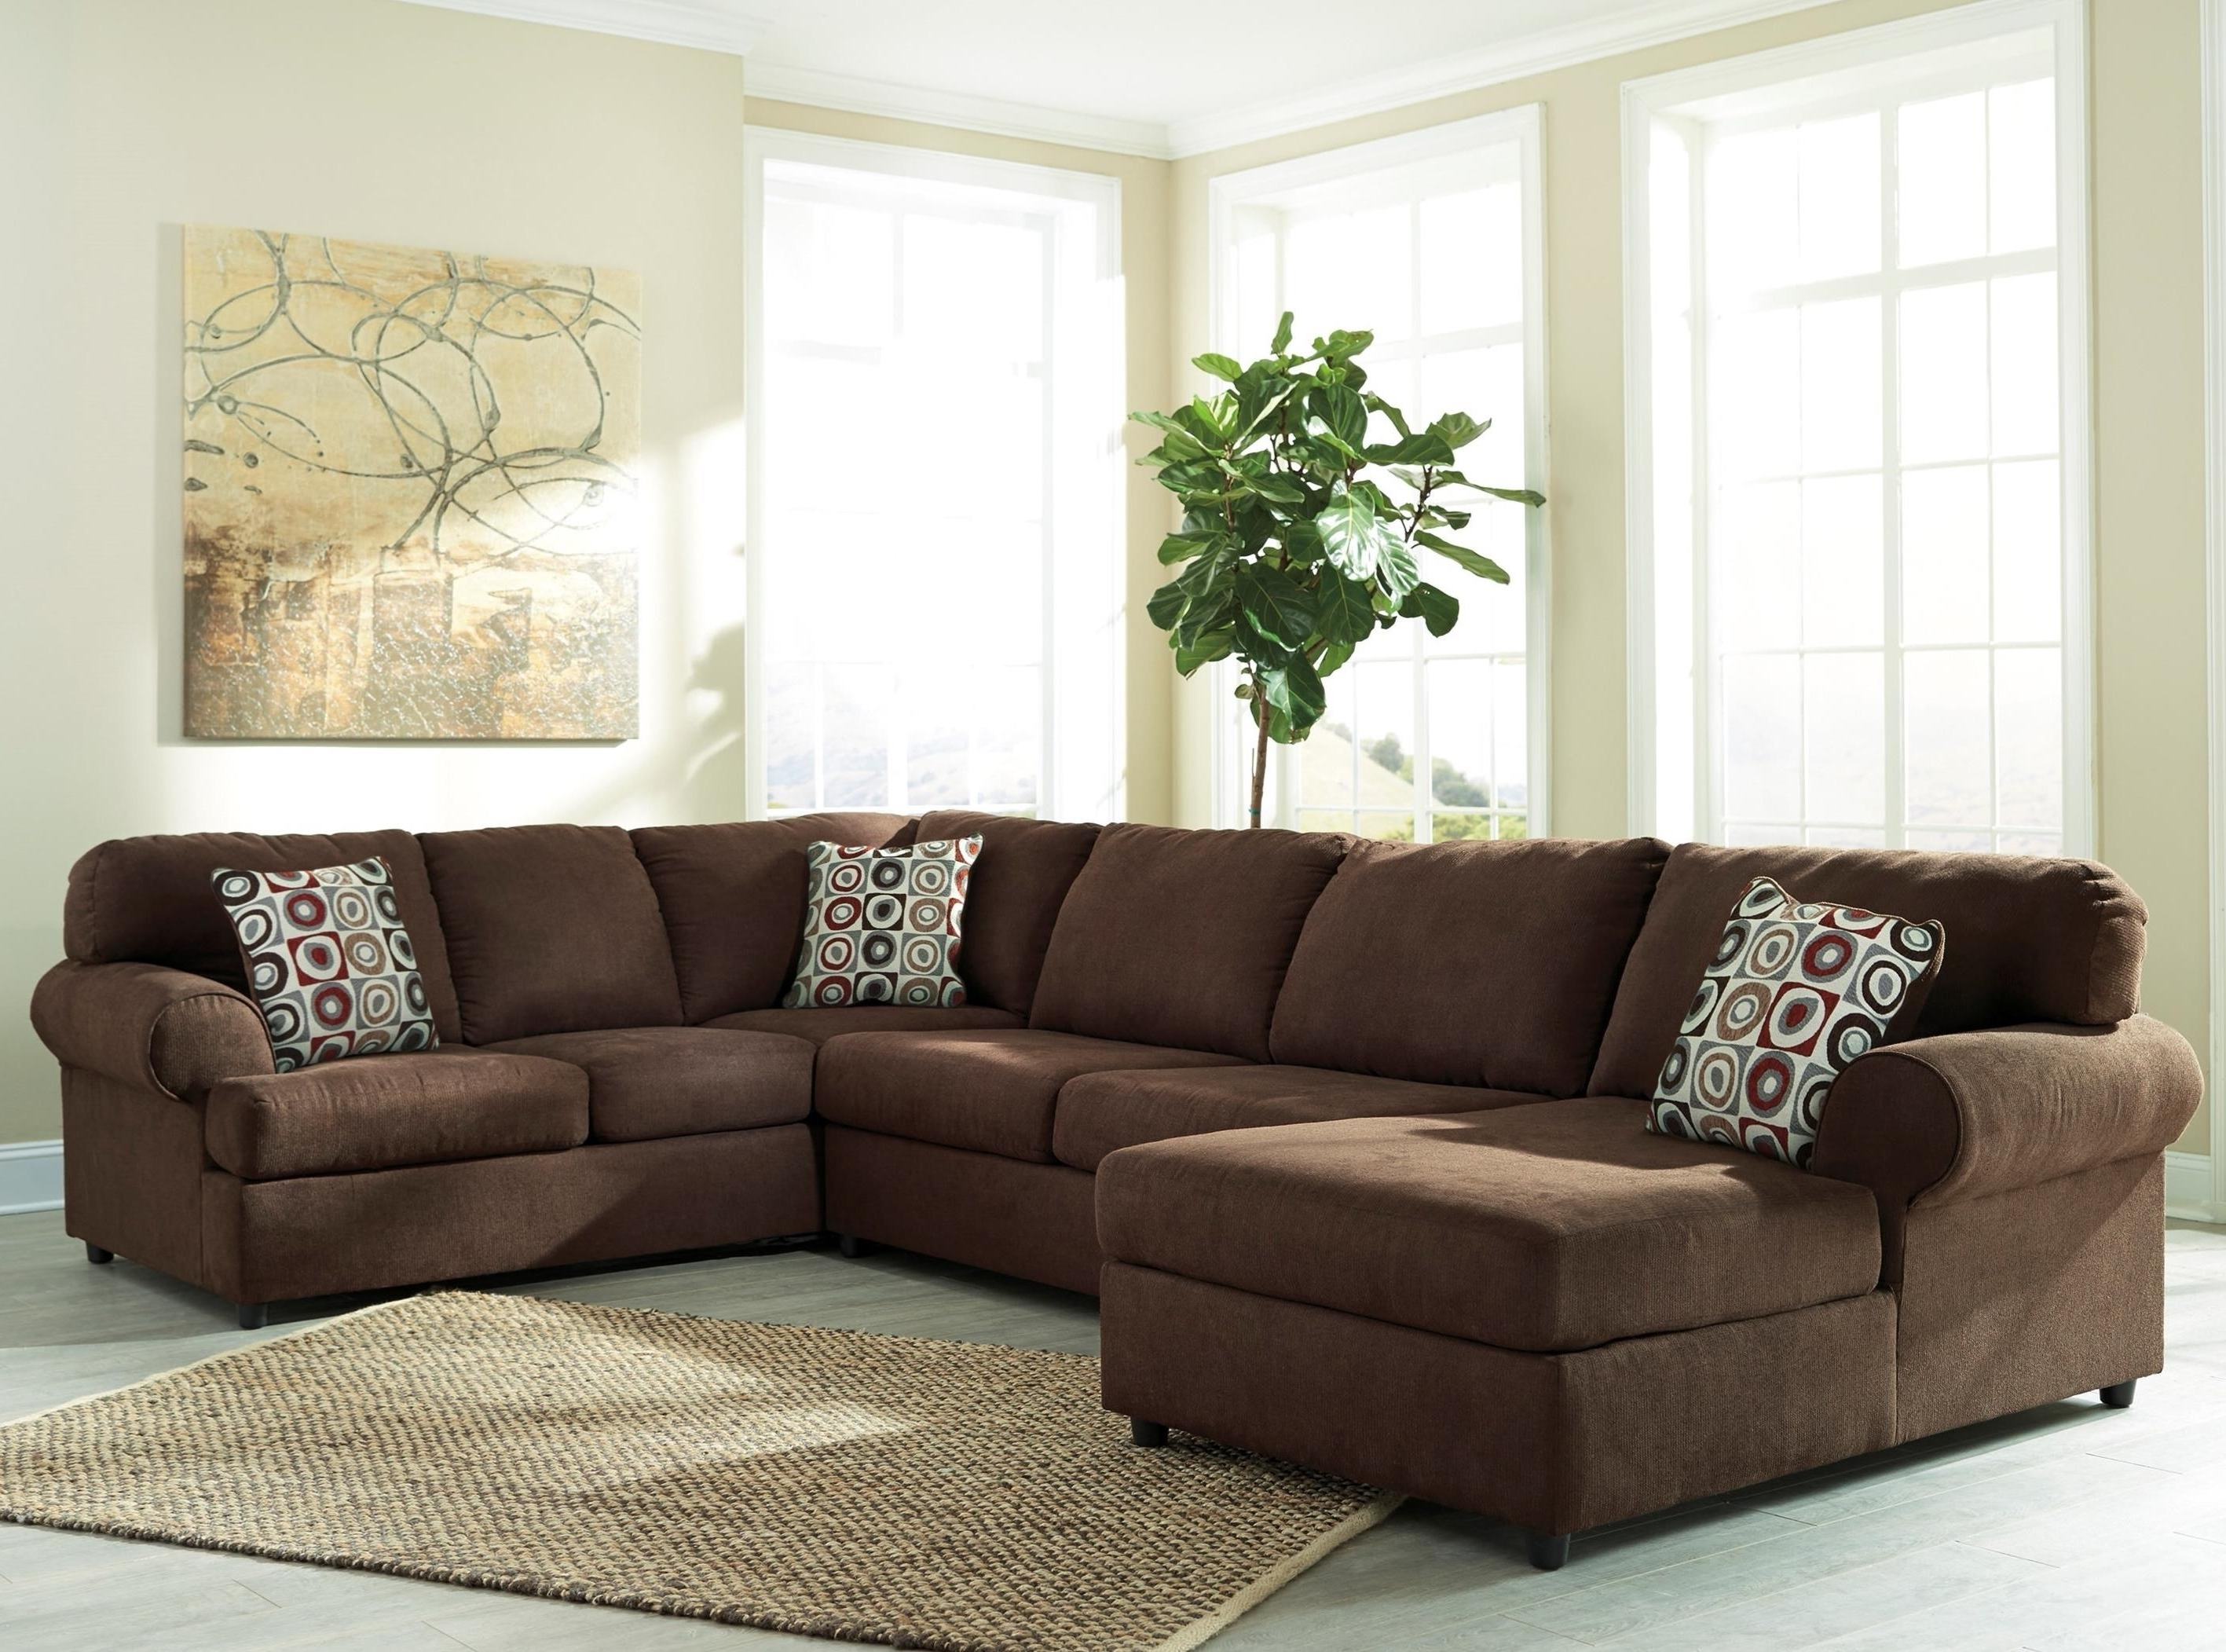 Signature Designashley Jayceon 3 Piece Sectional With Left For Most Recent Long Chaise Sofas (View 8 of 15)